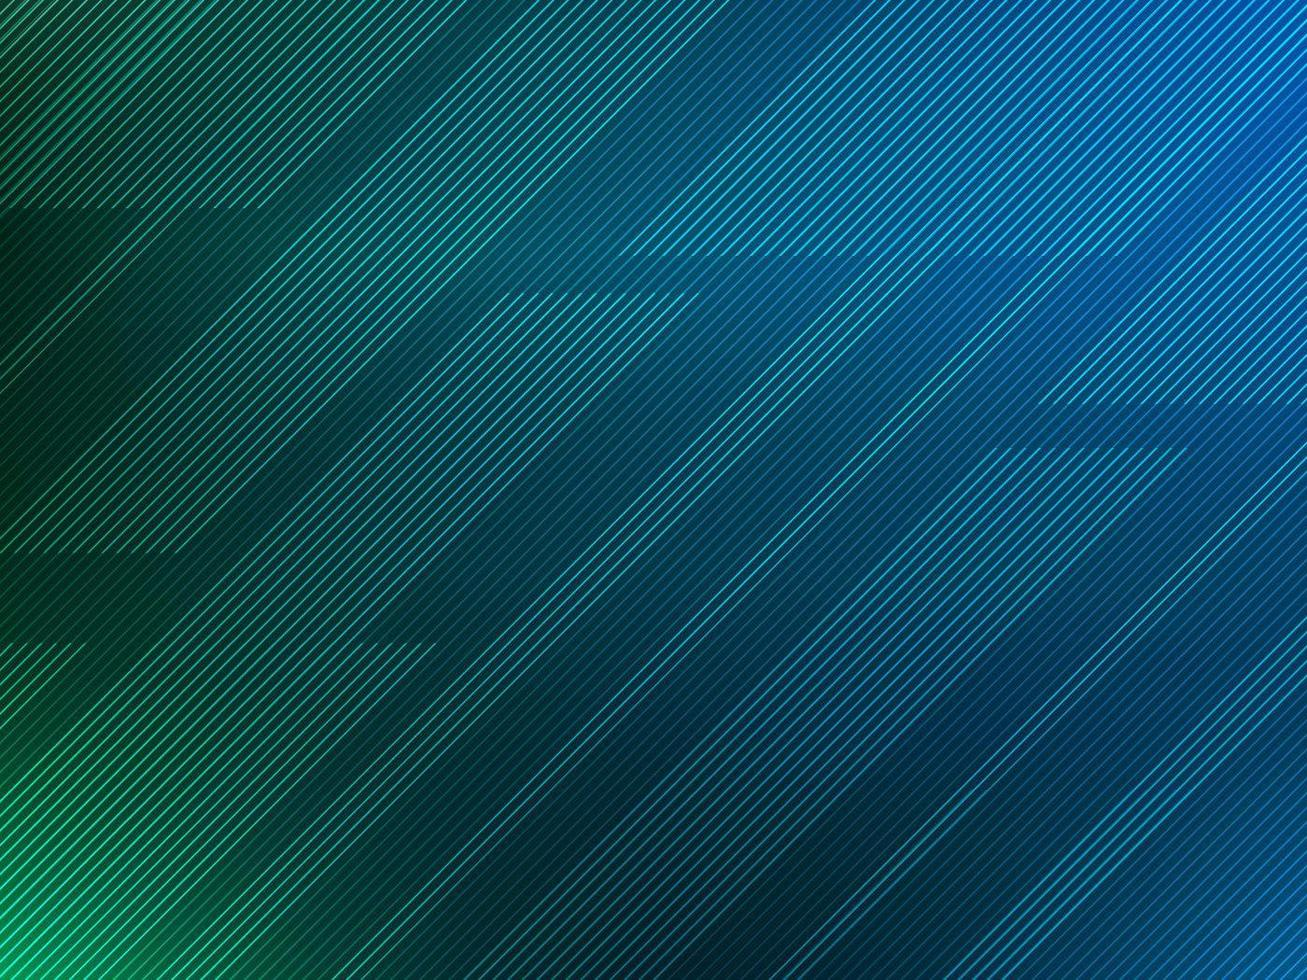 Abstract Futuristic Thin Lines Background vector